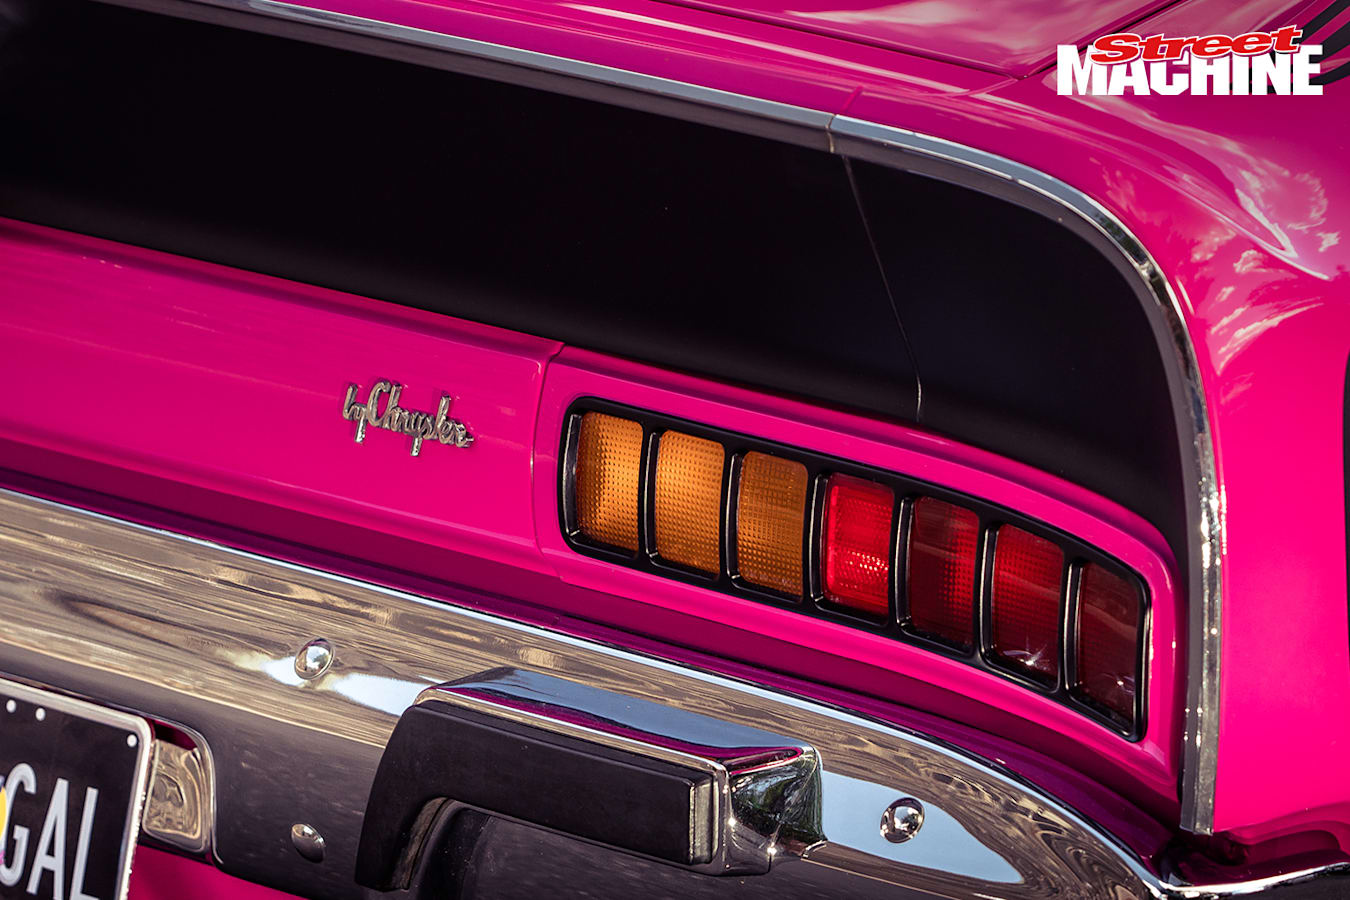 Chrysler Valiant Charger XL Pink 7 Nw Jpg